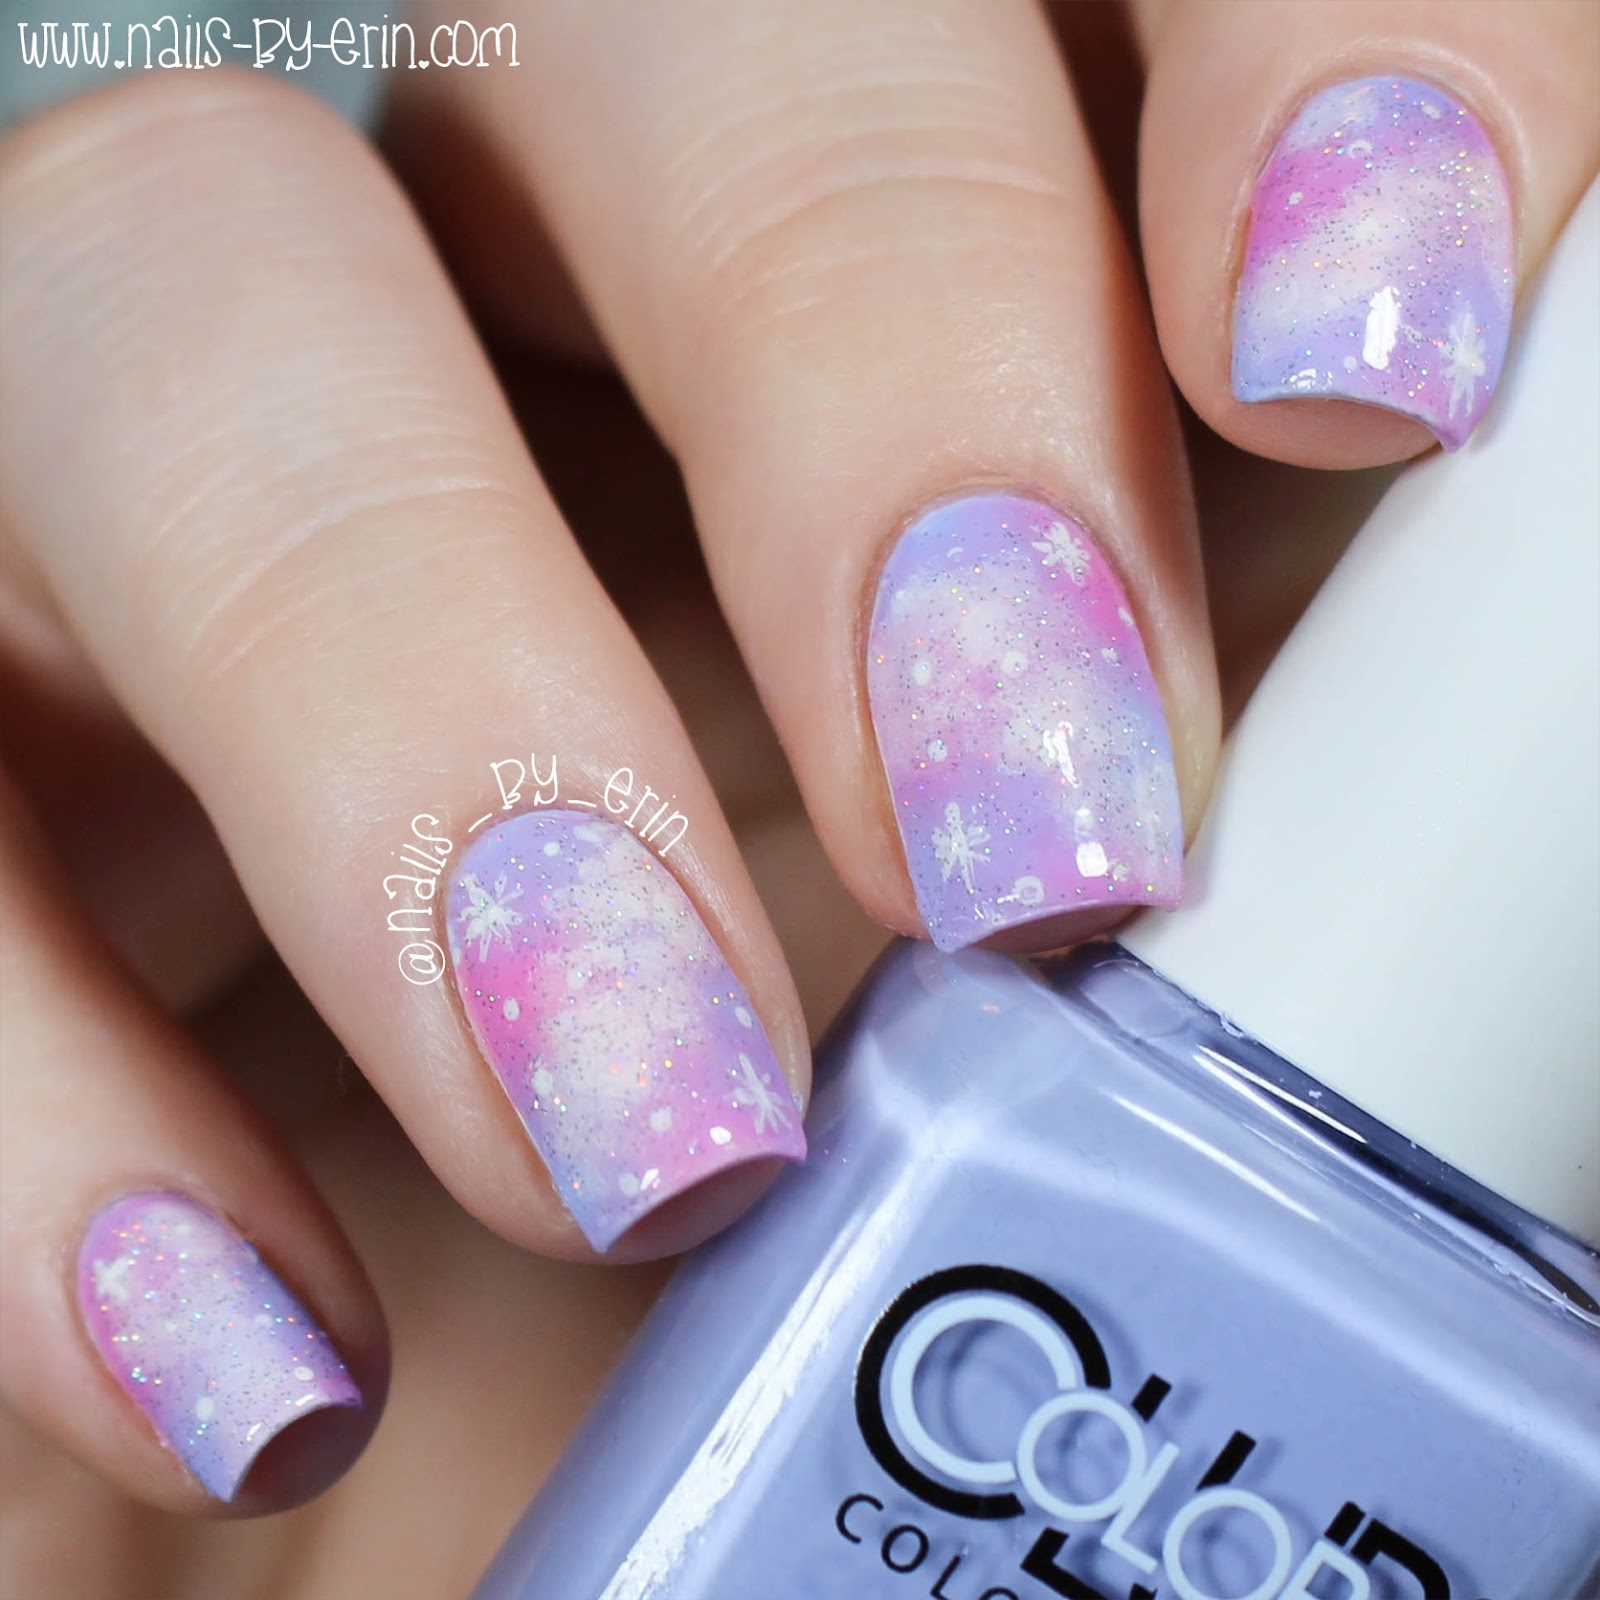 NailsByErin: Pastel Galaxy Nails